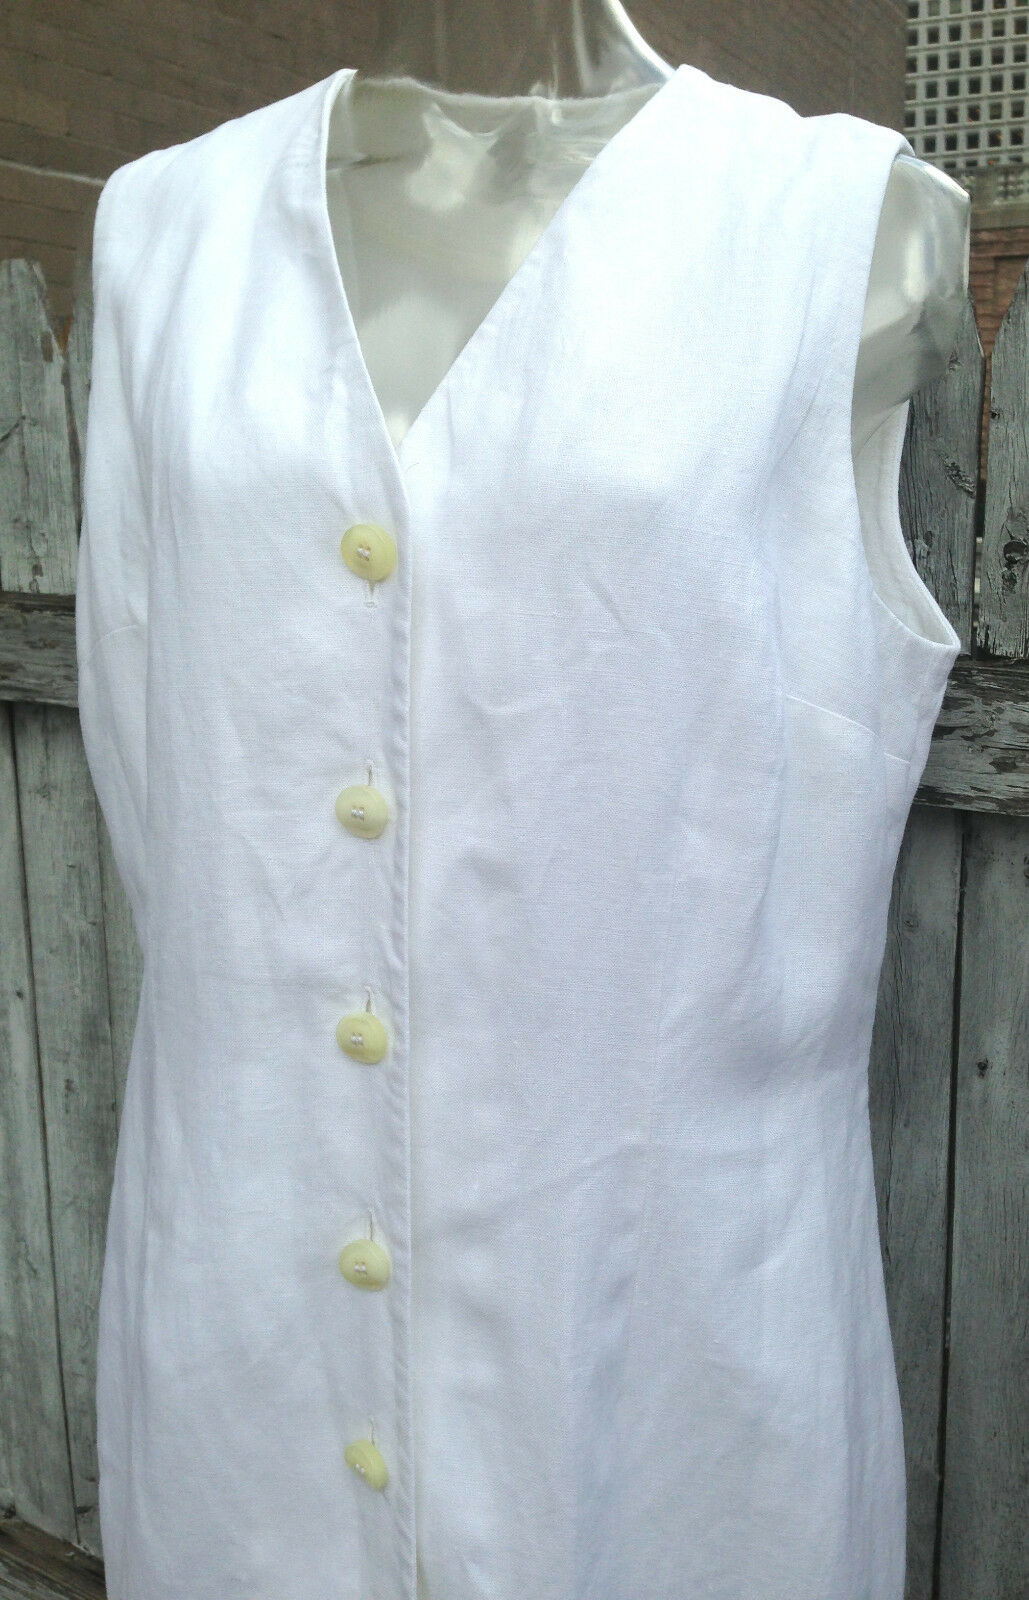 LORD & TAYLOR Linen Midi Dress White Button Down Sleeveless Lined 10 NWOT B 36